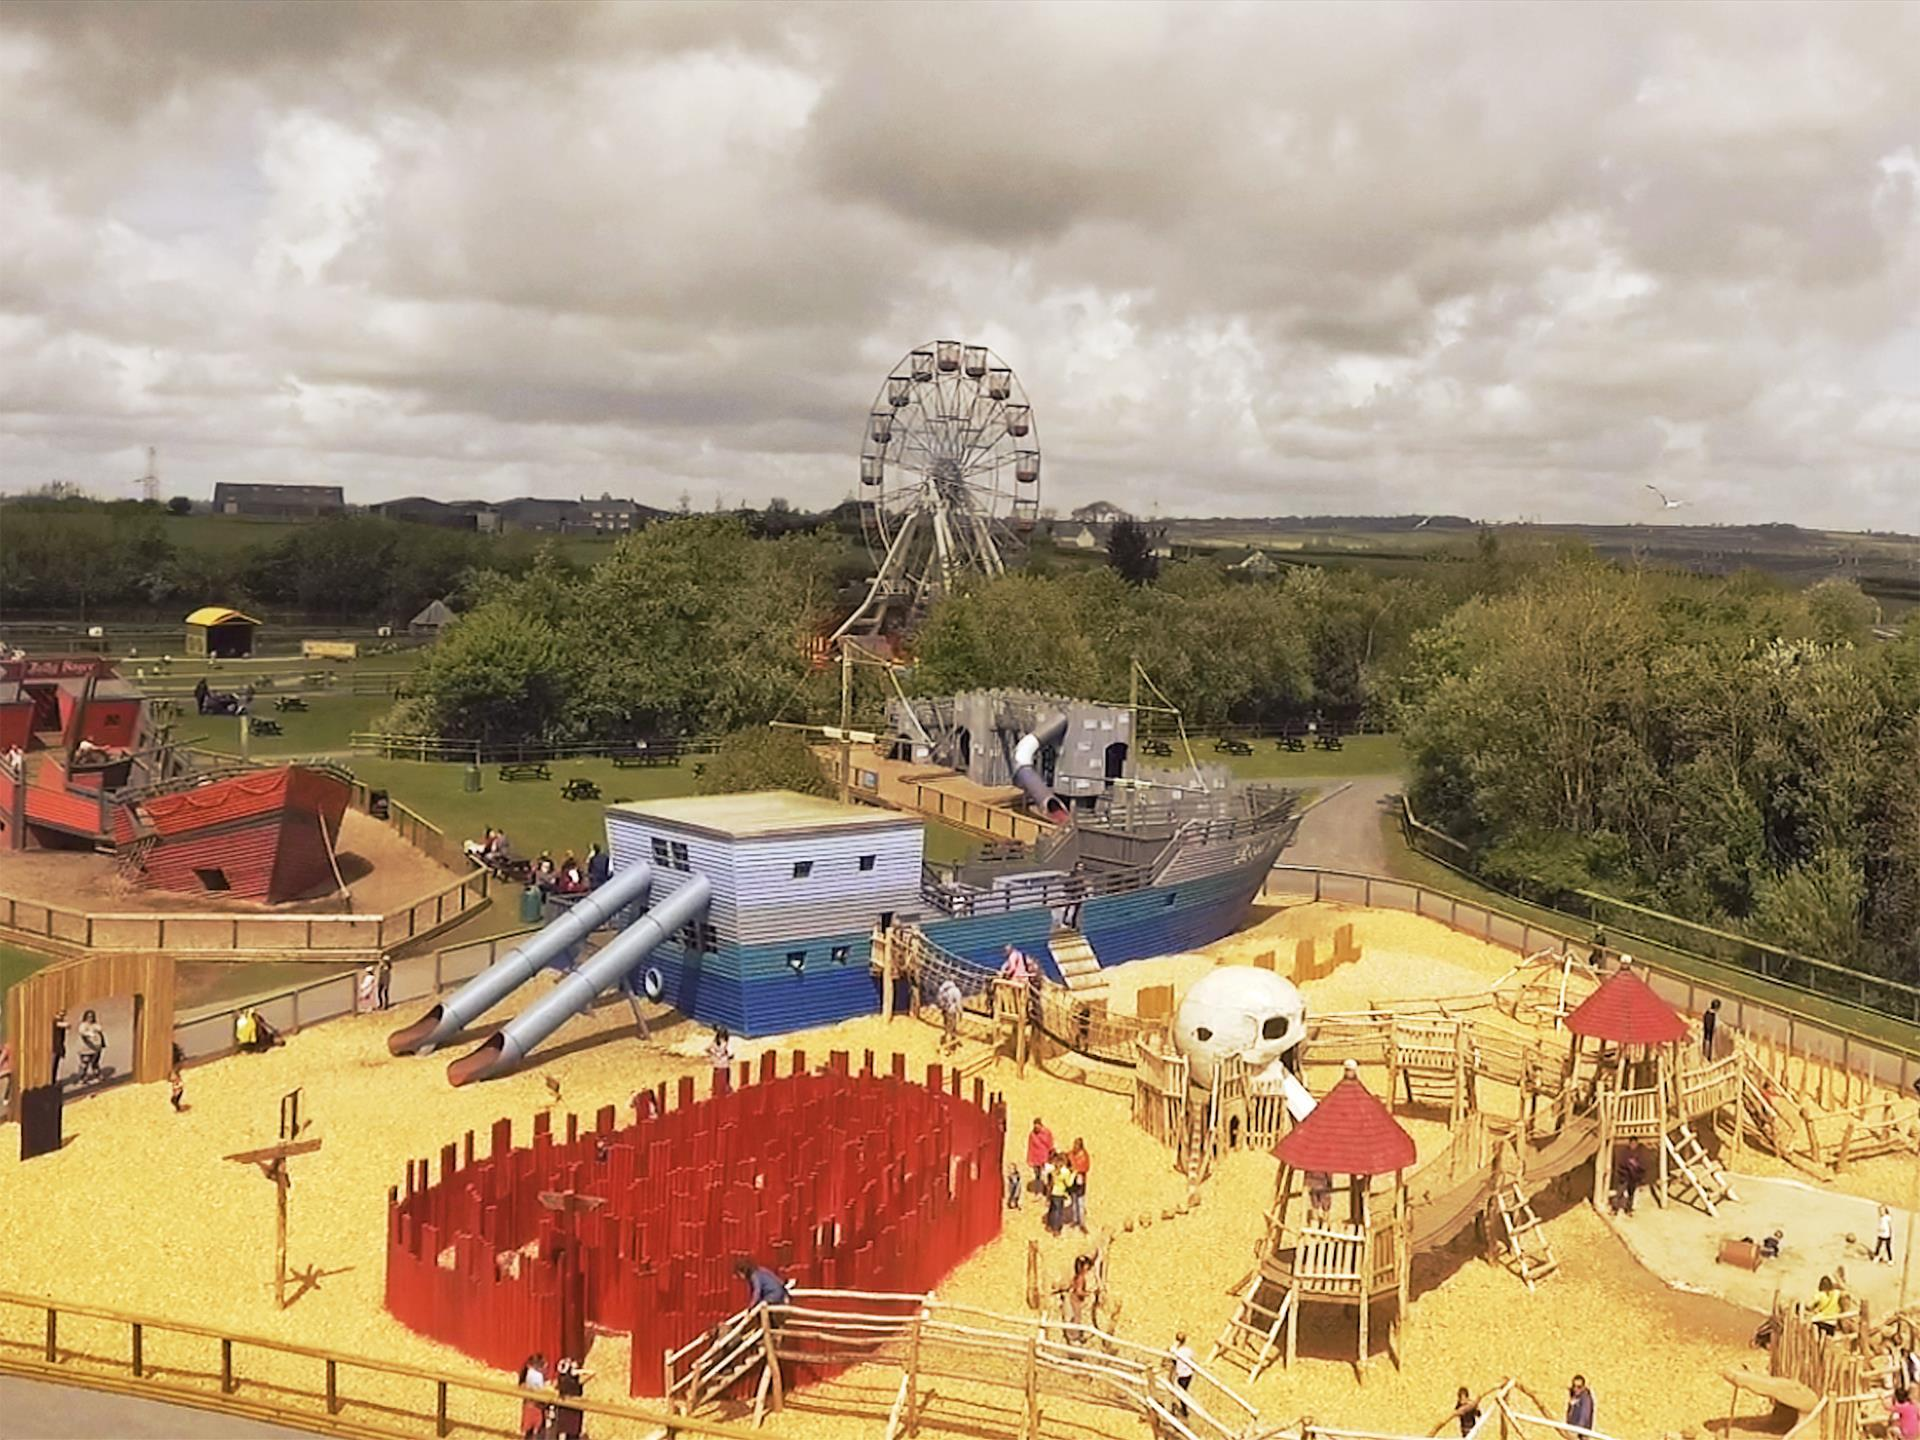 The Pirate Playground at Folly Farm